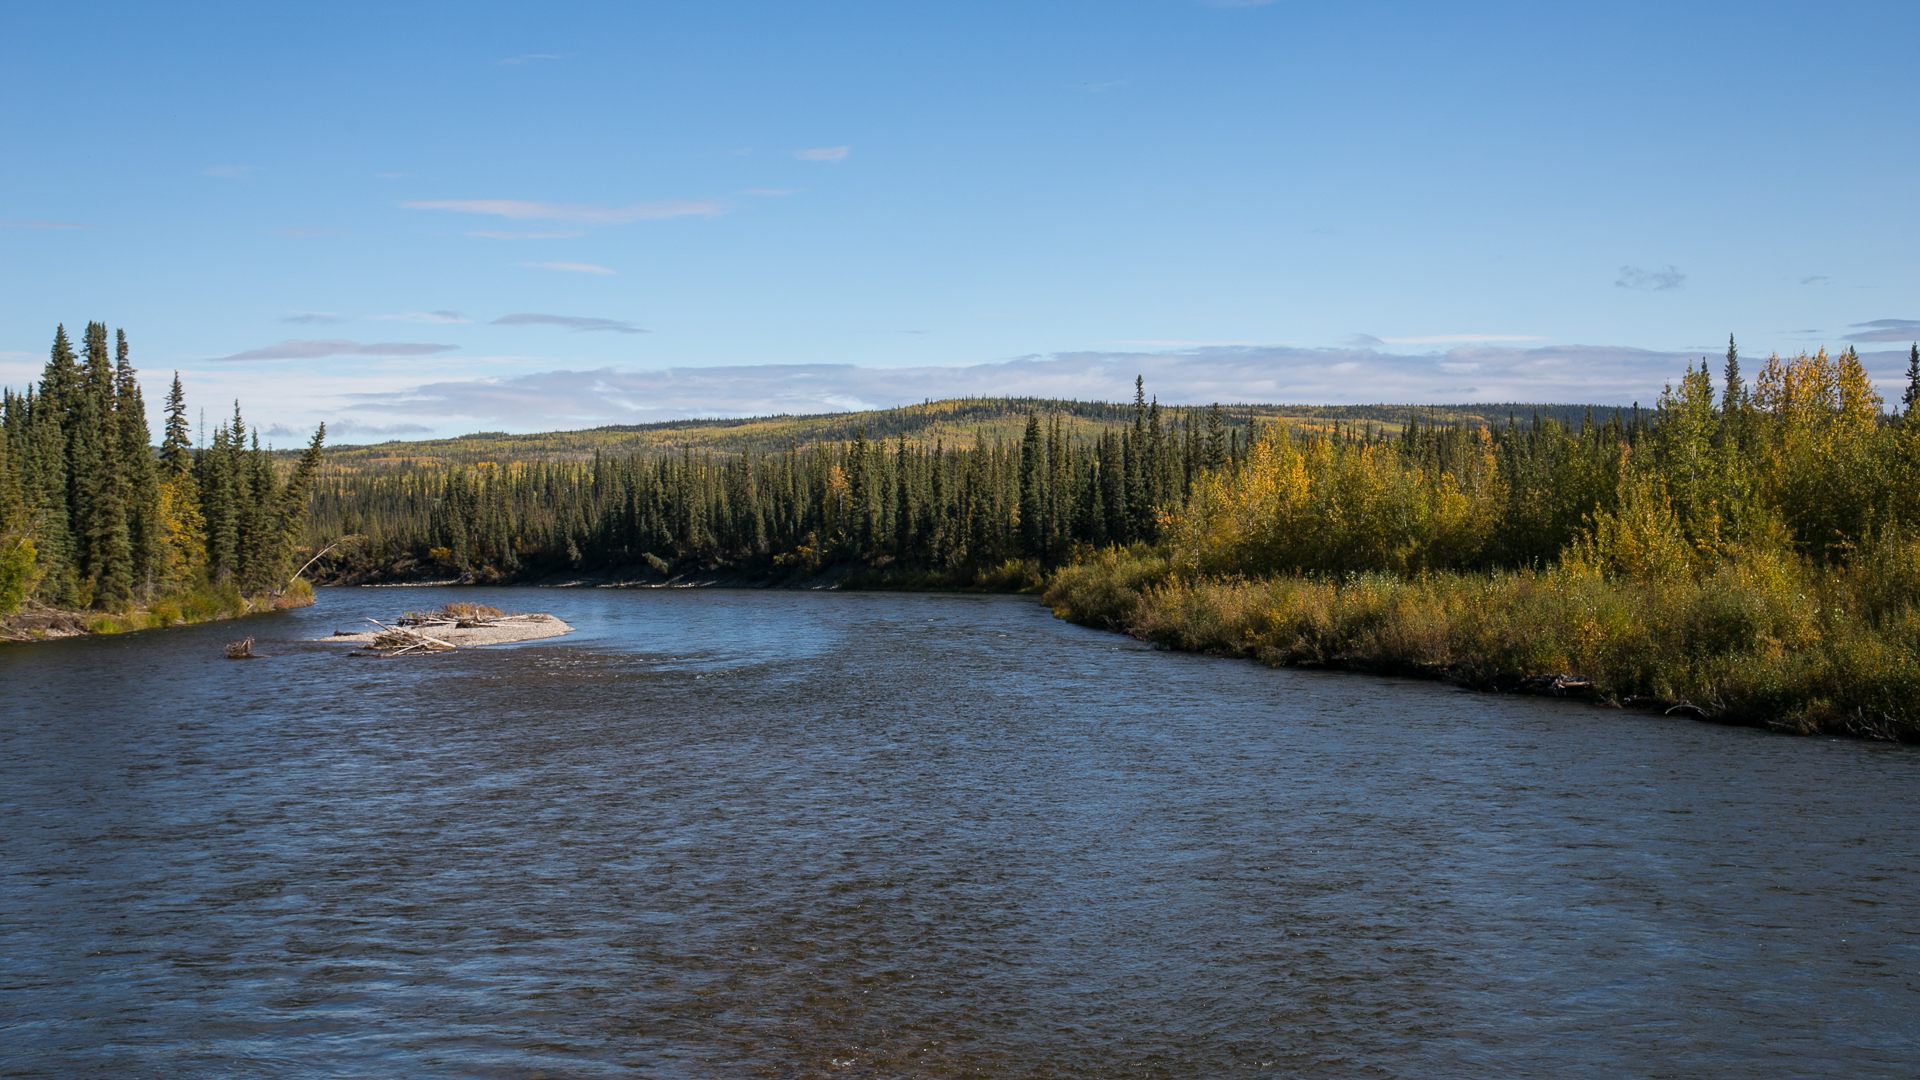 Crossing the river at the start of the Dempster Highway. We were back onto pavement at this point, and on our way south.